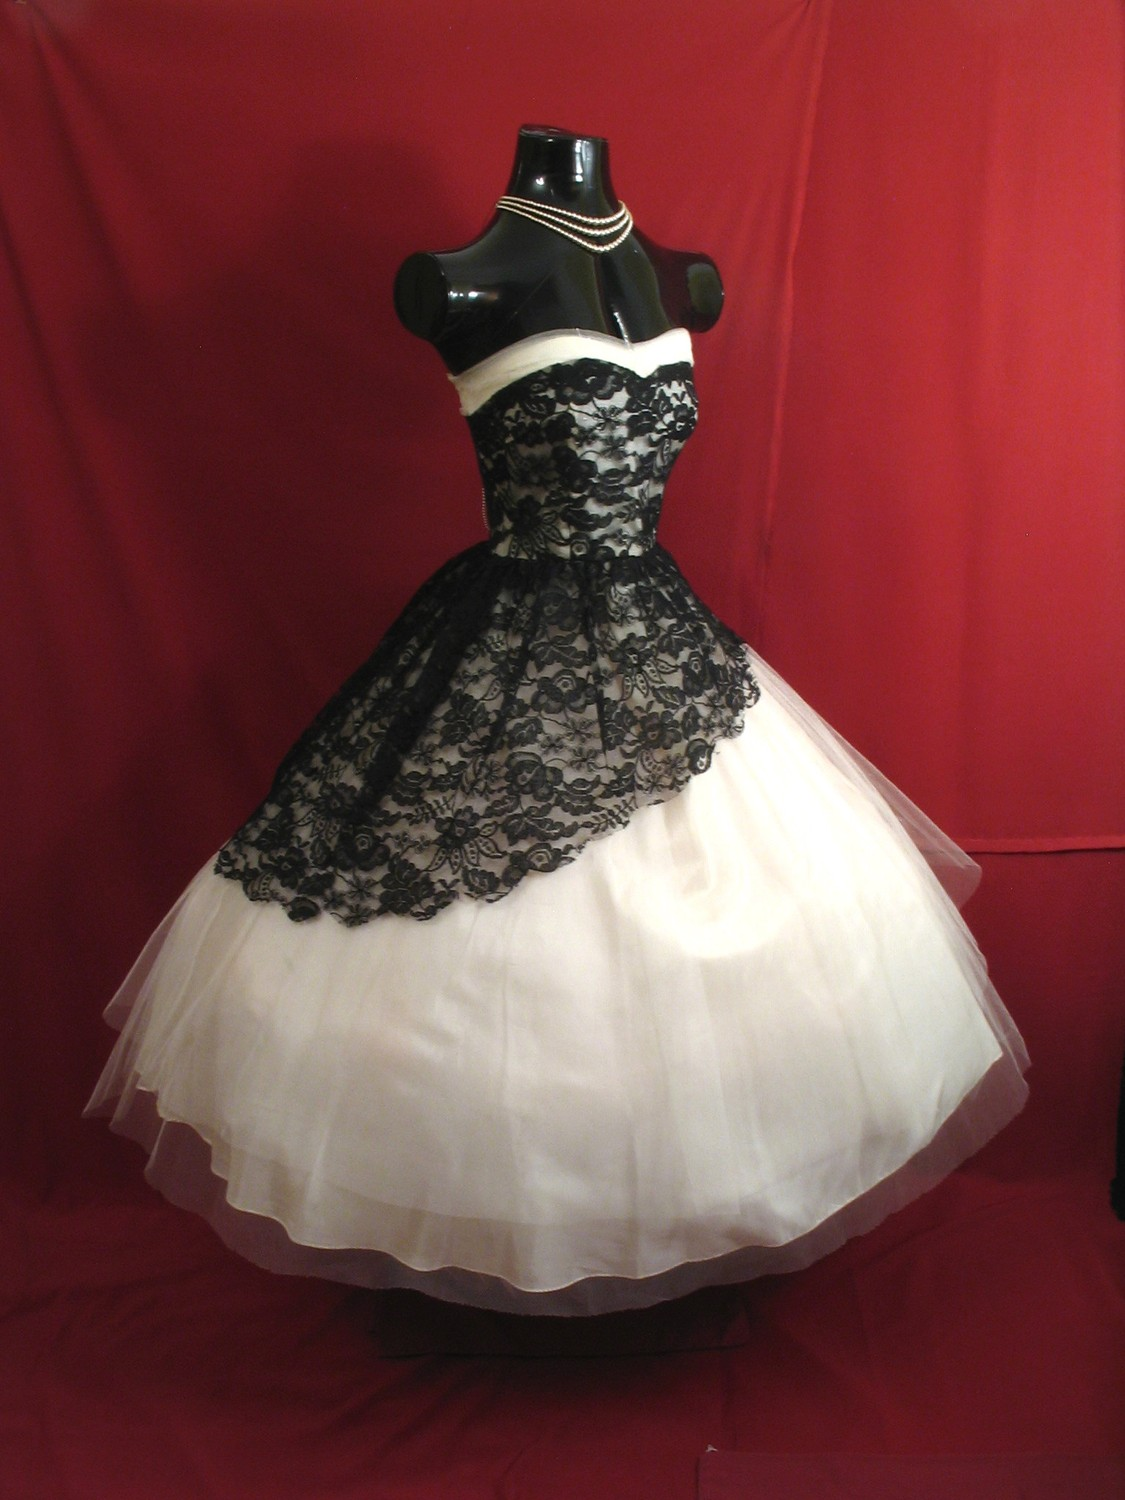 Vintage 1950 S 50s Strapless Black White Lace Tulle Party Etsy Short Wedding Dress Victorian Ball Gowns Black Wedding Dresses [ 1500 x 1125 Pixel ]